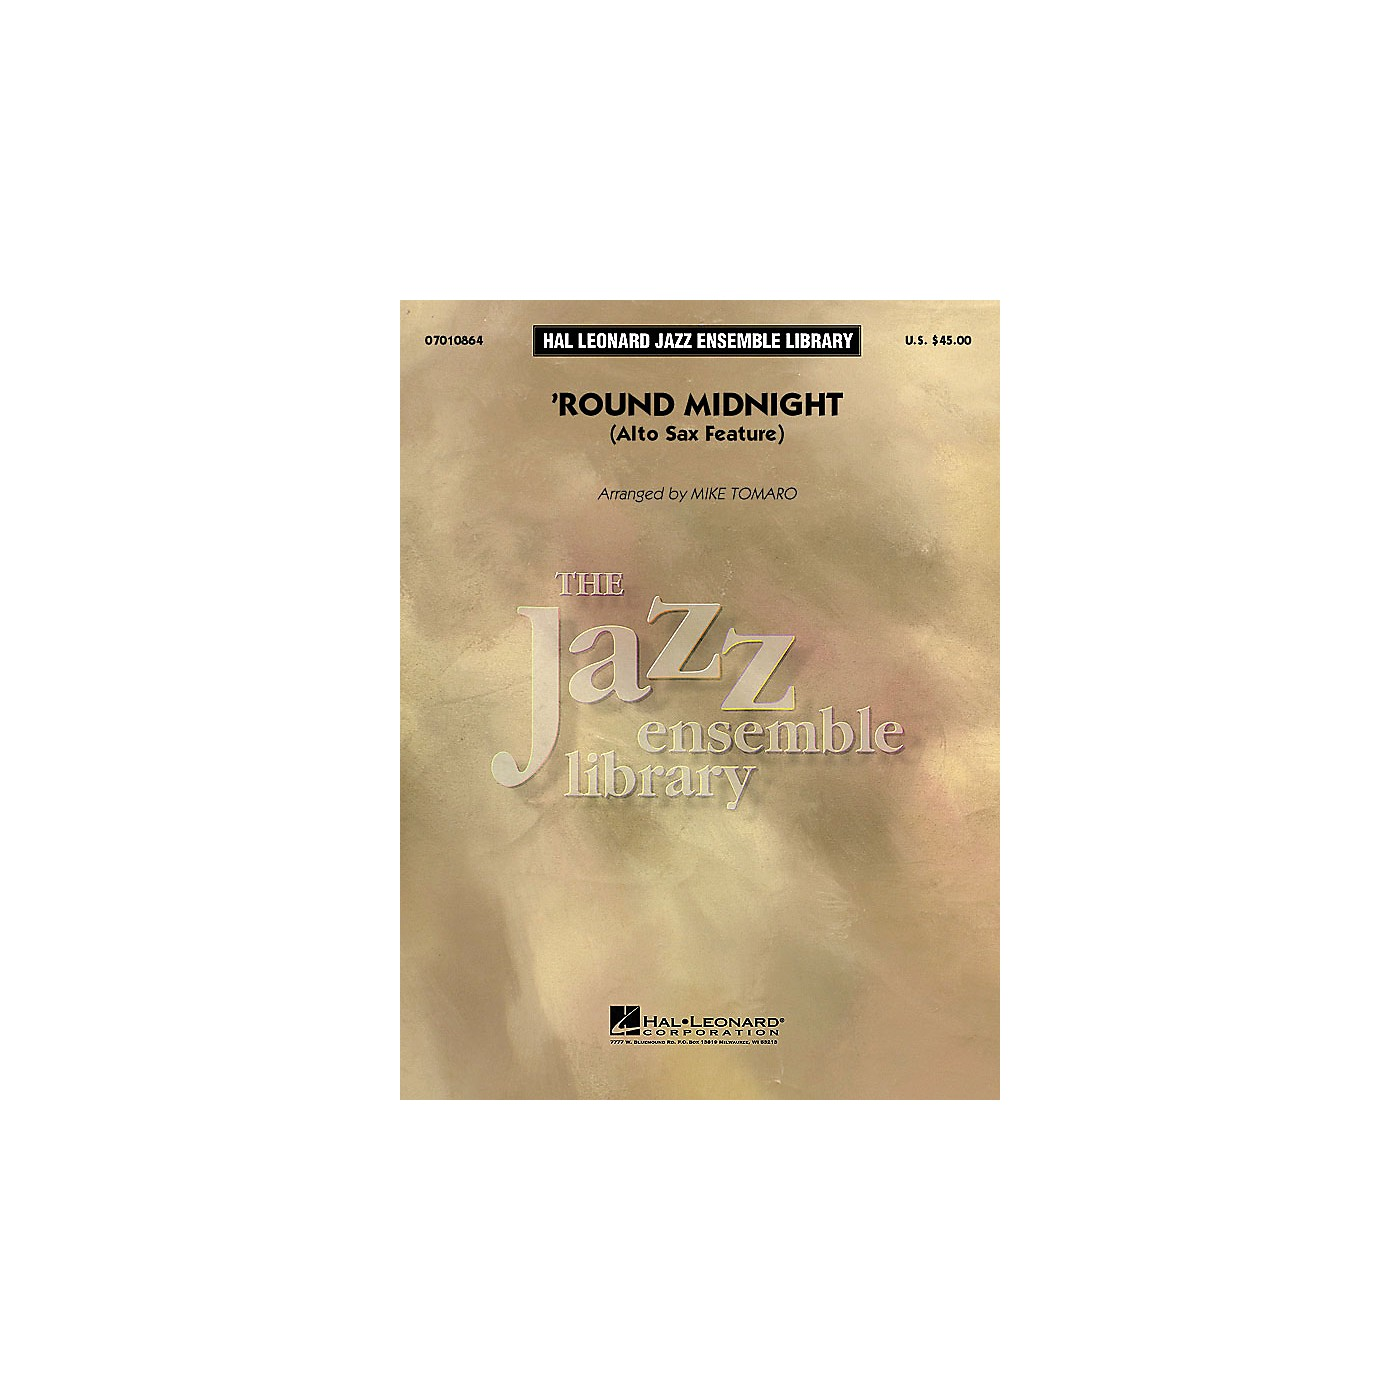 Hal Leonard Round Midnight (Alto Sax Feature) Jazz Band Level 4 Arranged by Mike Tomaro thumbnail